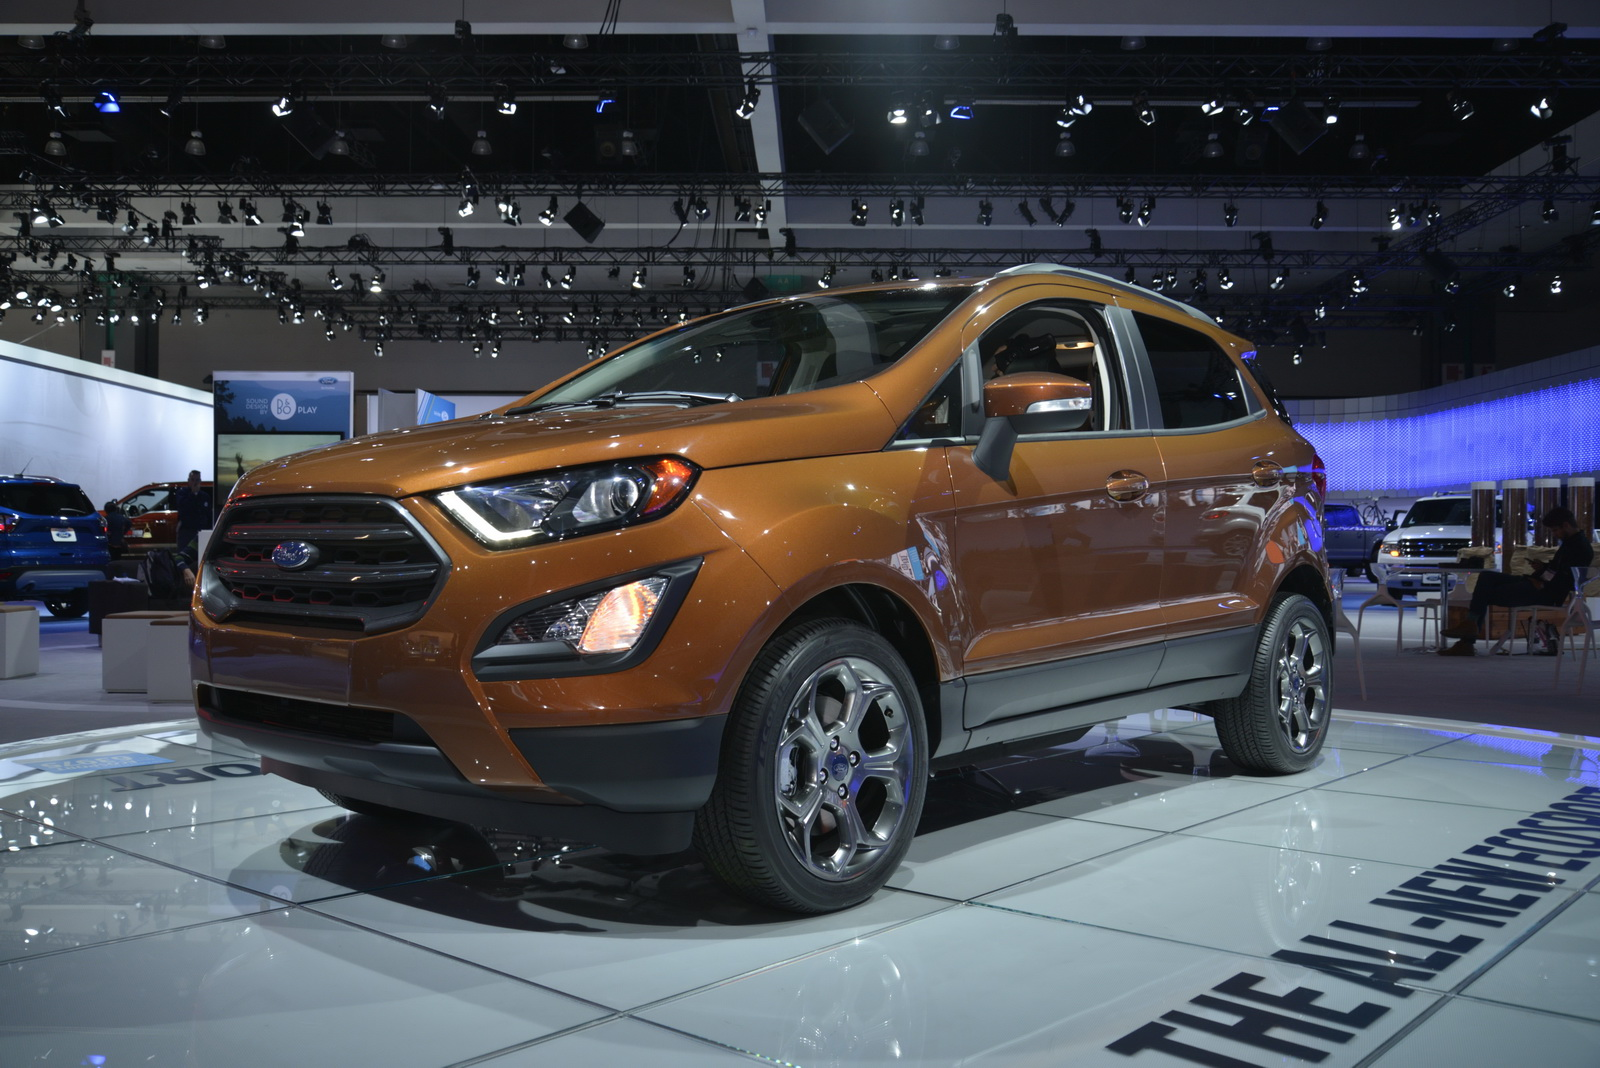 ford s baby suv the new ecosport lands in the us. Black Bedroom Furniture Sets. Home Design Ideas